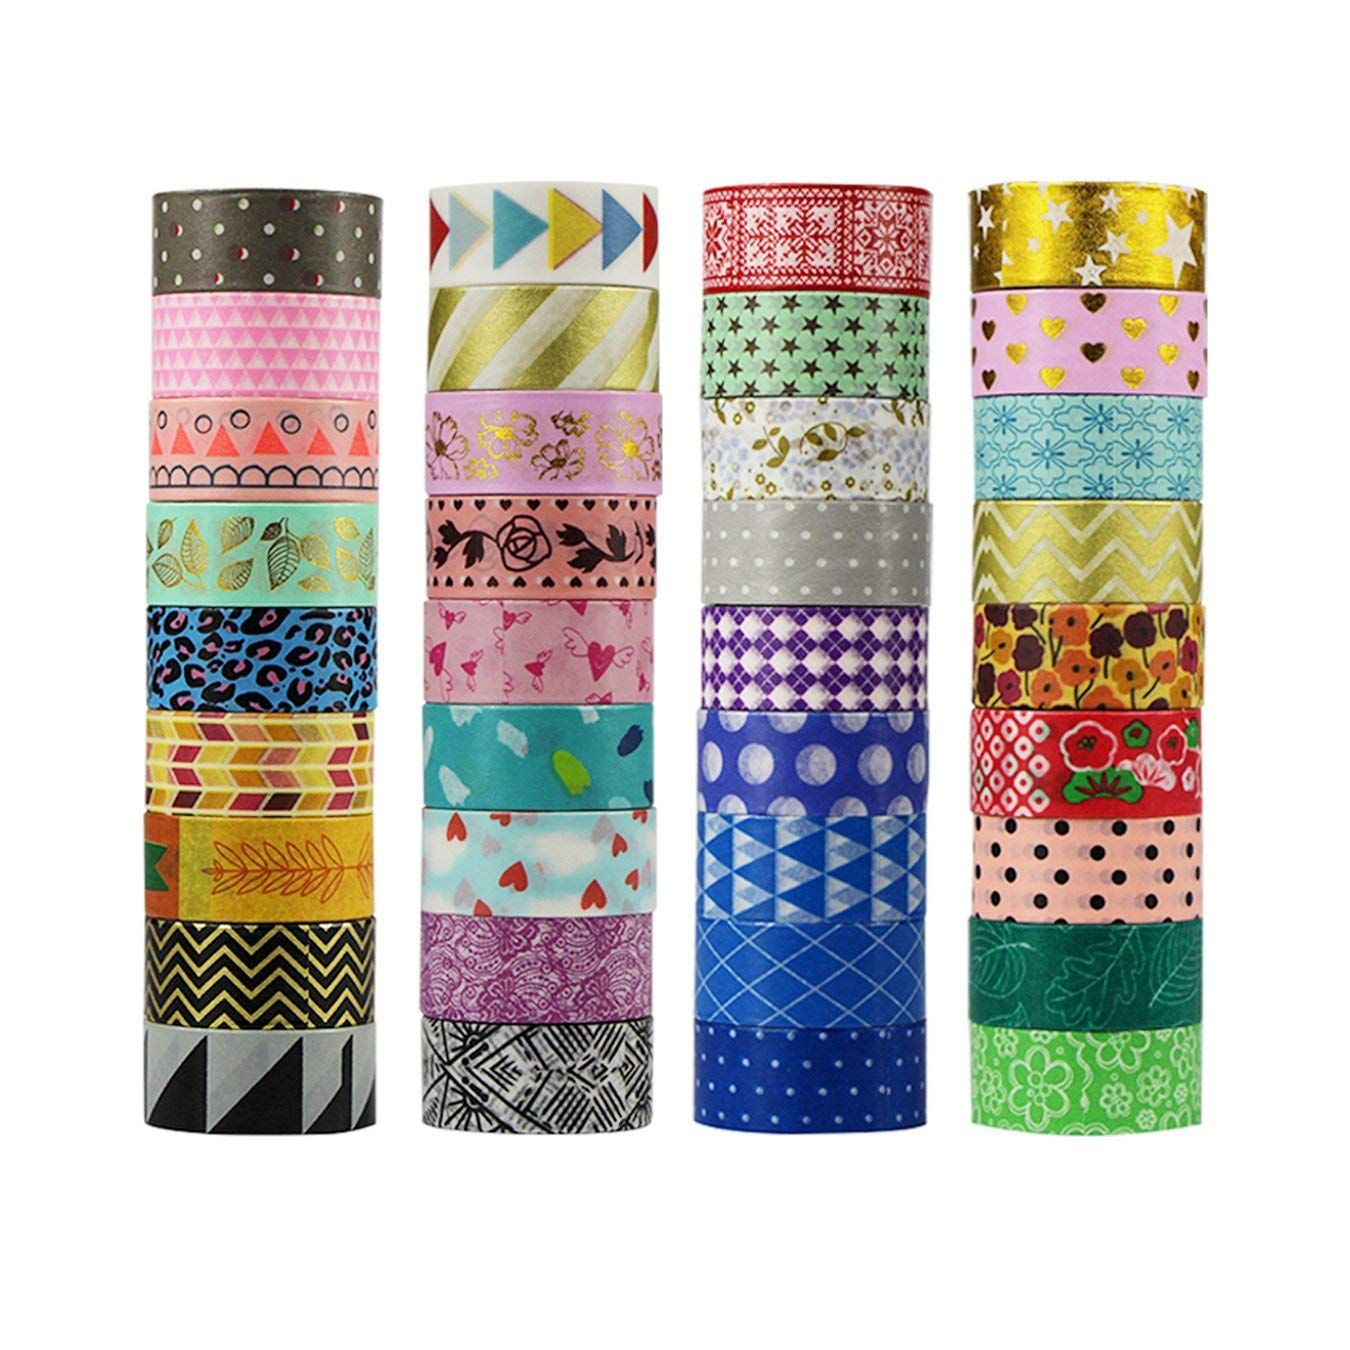 Deko Klebeband Uooom 30er Set Beautiful Washi Tape Masking Tape Deko Klebeband